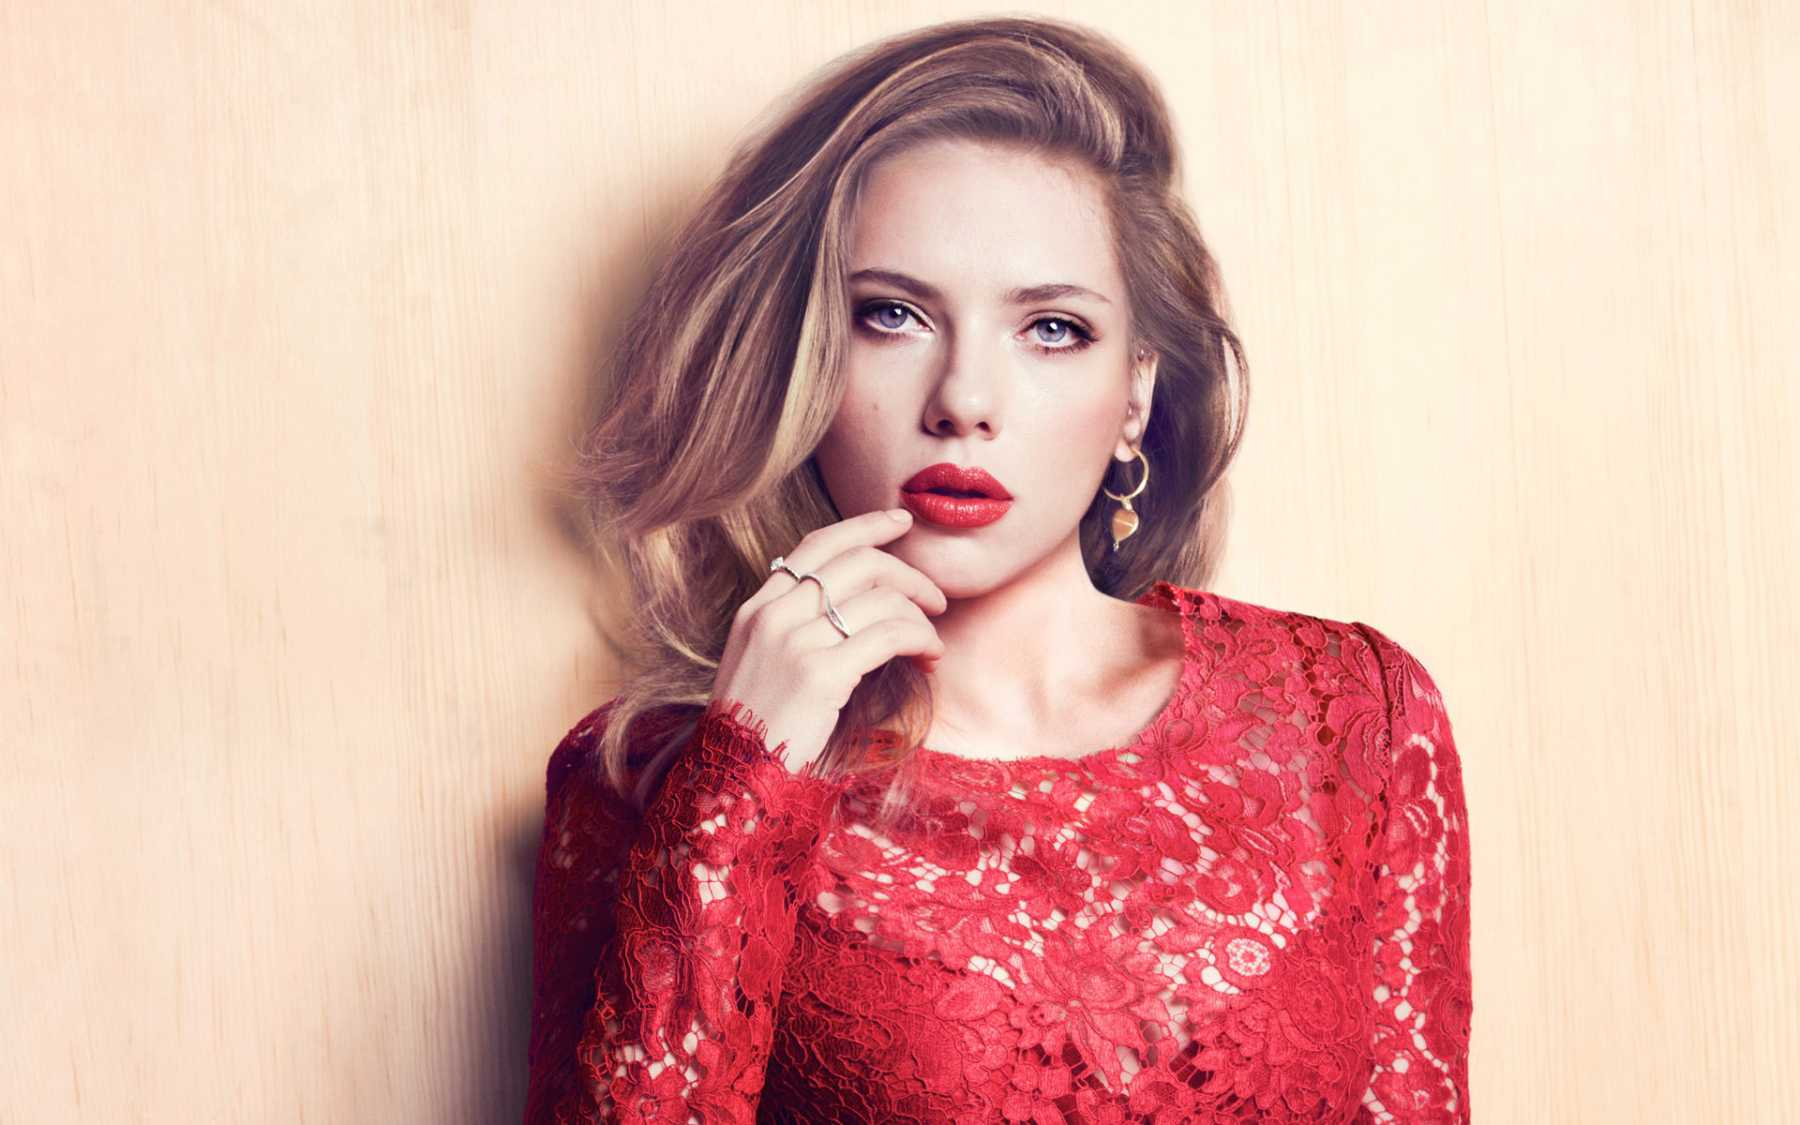 Scarlett Johansson Forms A Girlband And They Have A New Tune Out | Scarlett Johansson